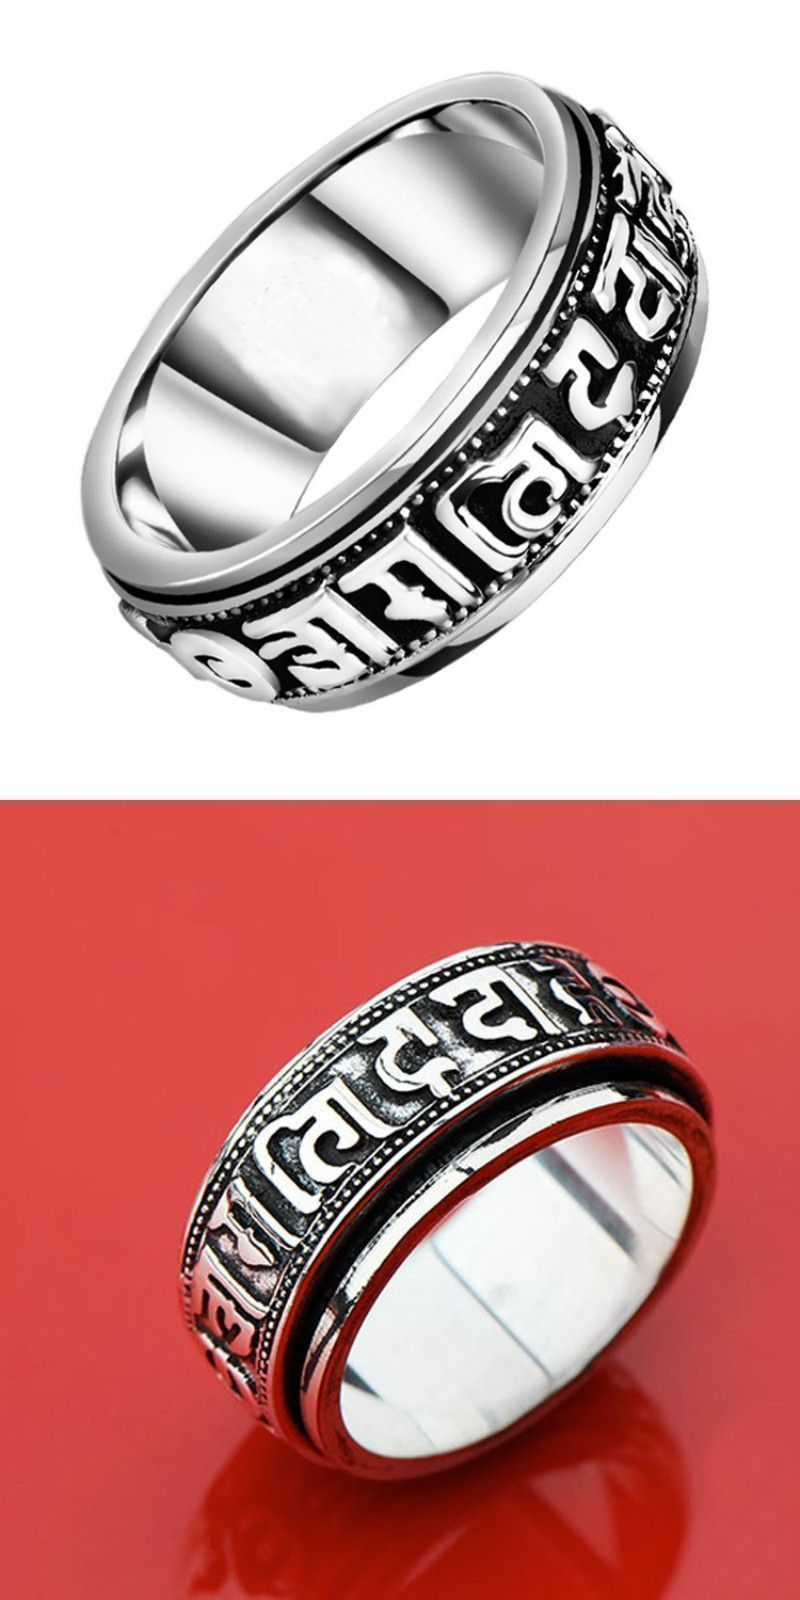 Endless friendship menus vintage punk rings for men metal mantra